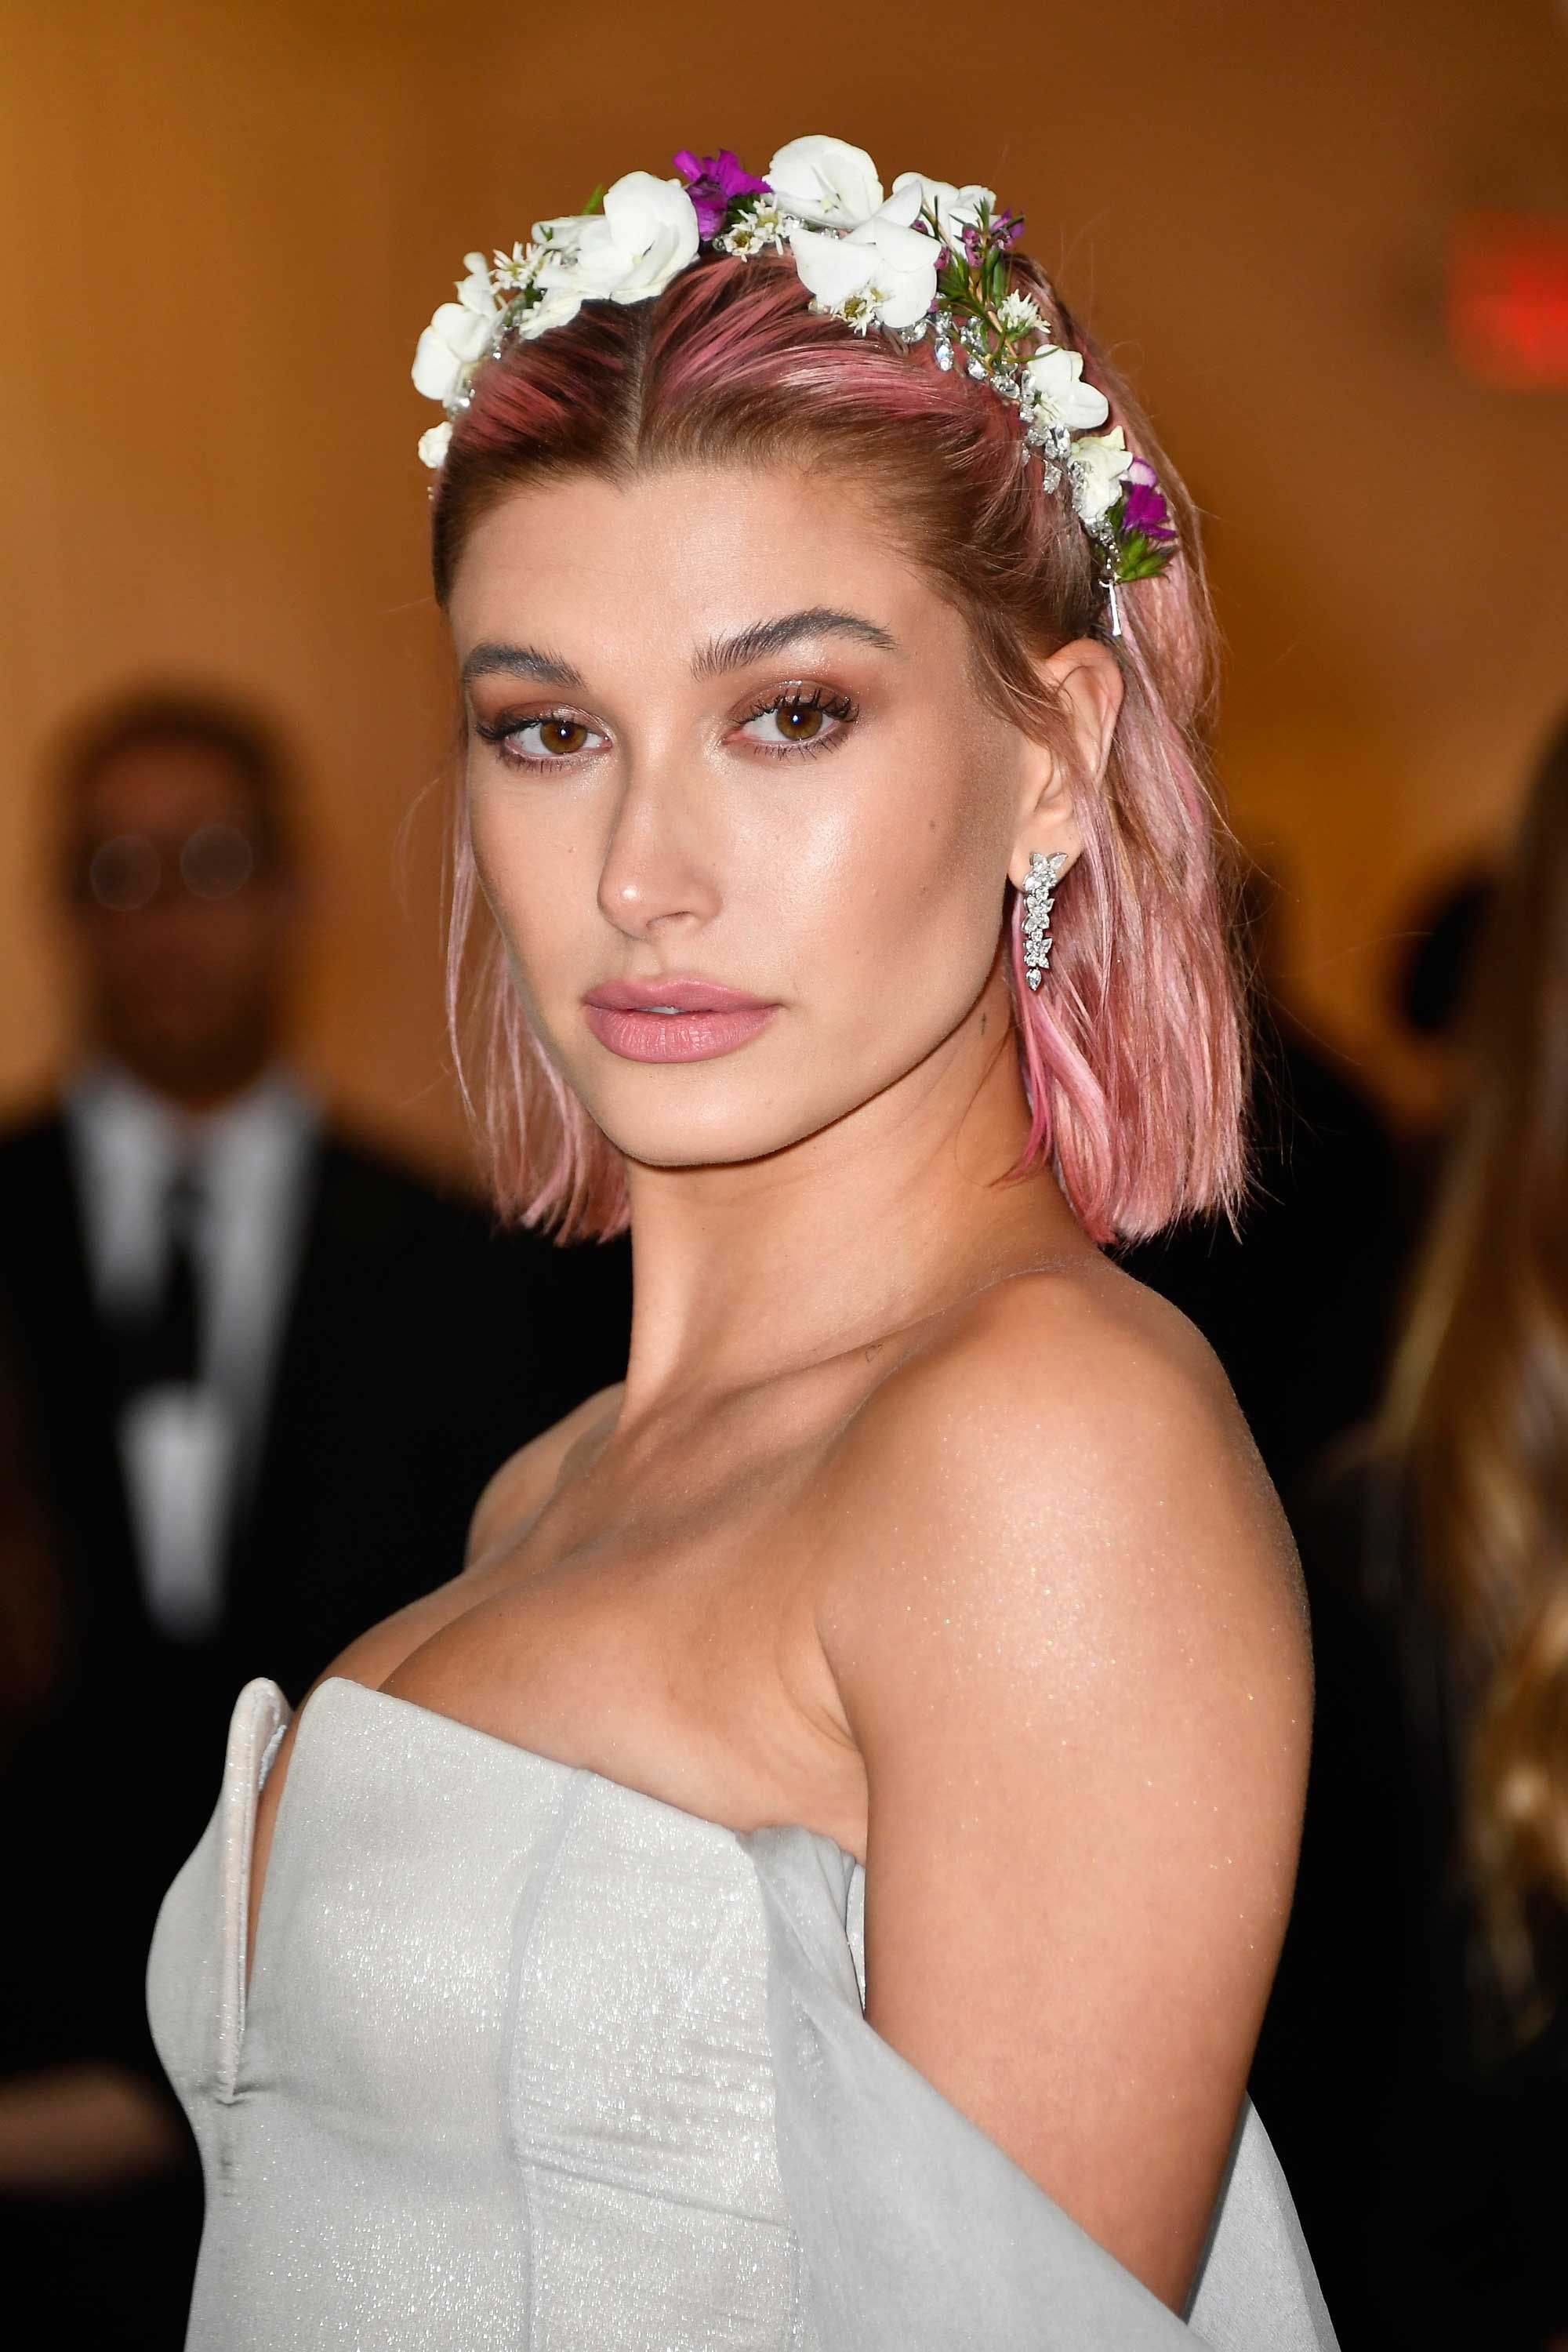 Hailey Baldwin Dyed Her Hair Pink For The 2018 Met Gala